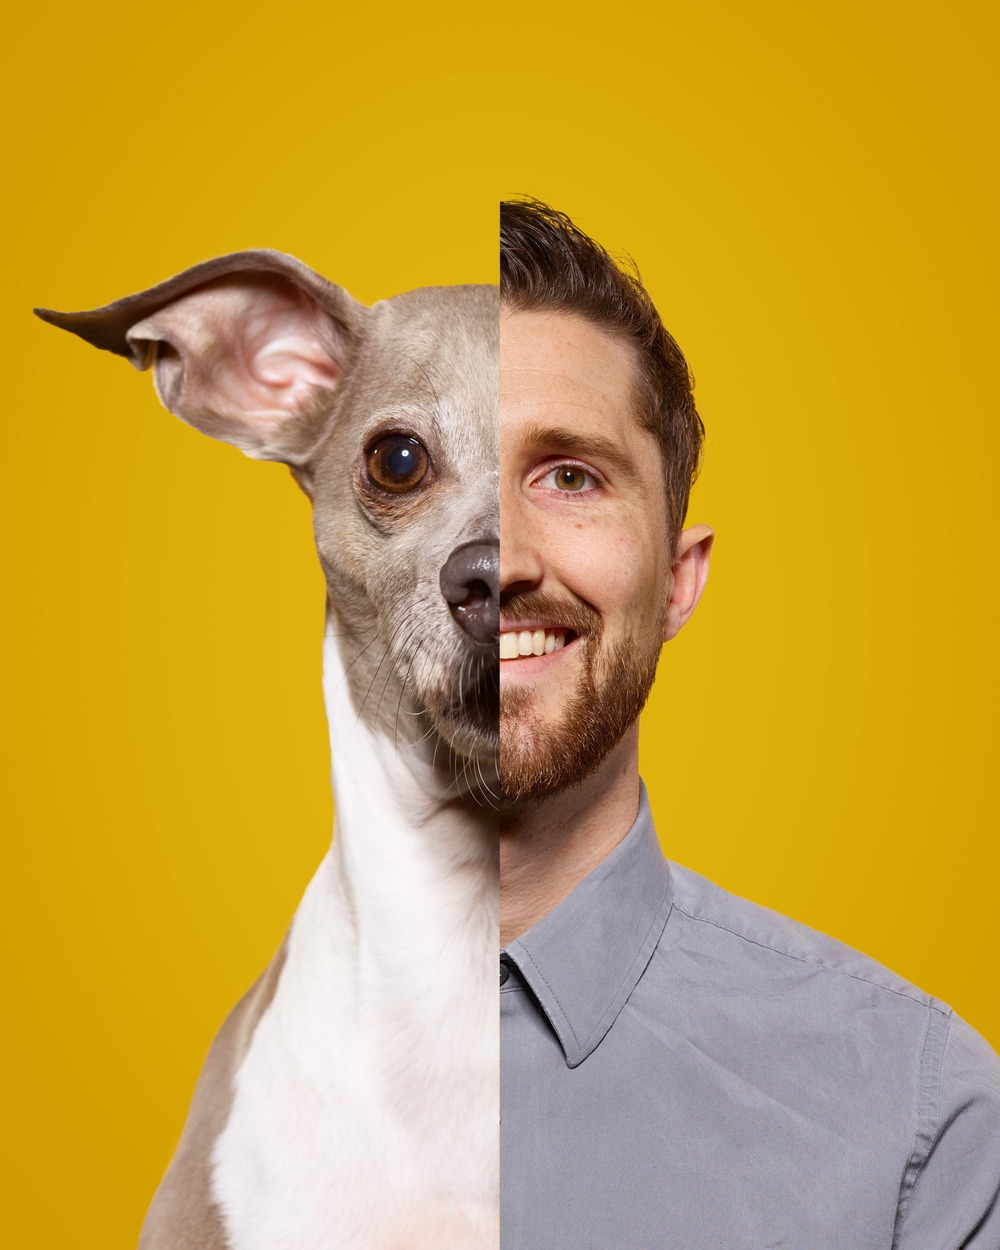 Brandon Todd : Art Director Brandon is a Kansas City native. As an Art Director specializing in design and animation, Brandon bends pixels to his will. When he goes home, he surrenders that will to his two little girls. Mulva is an Italian Greyhound and he claims there is a language barrier between them.